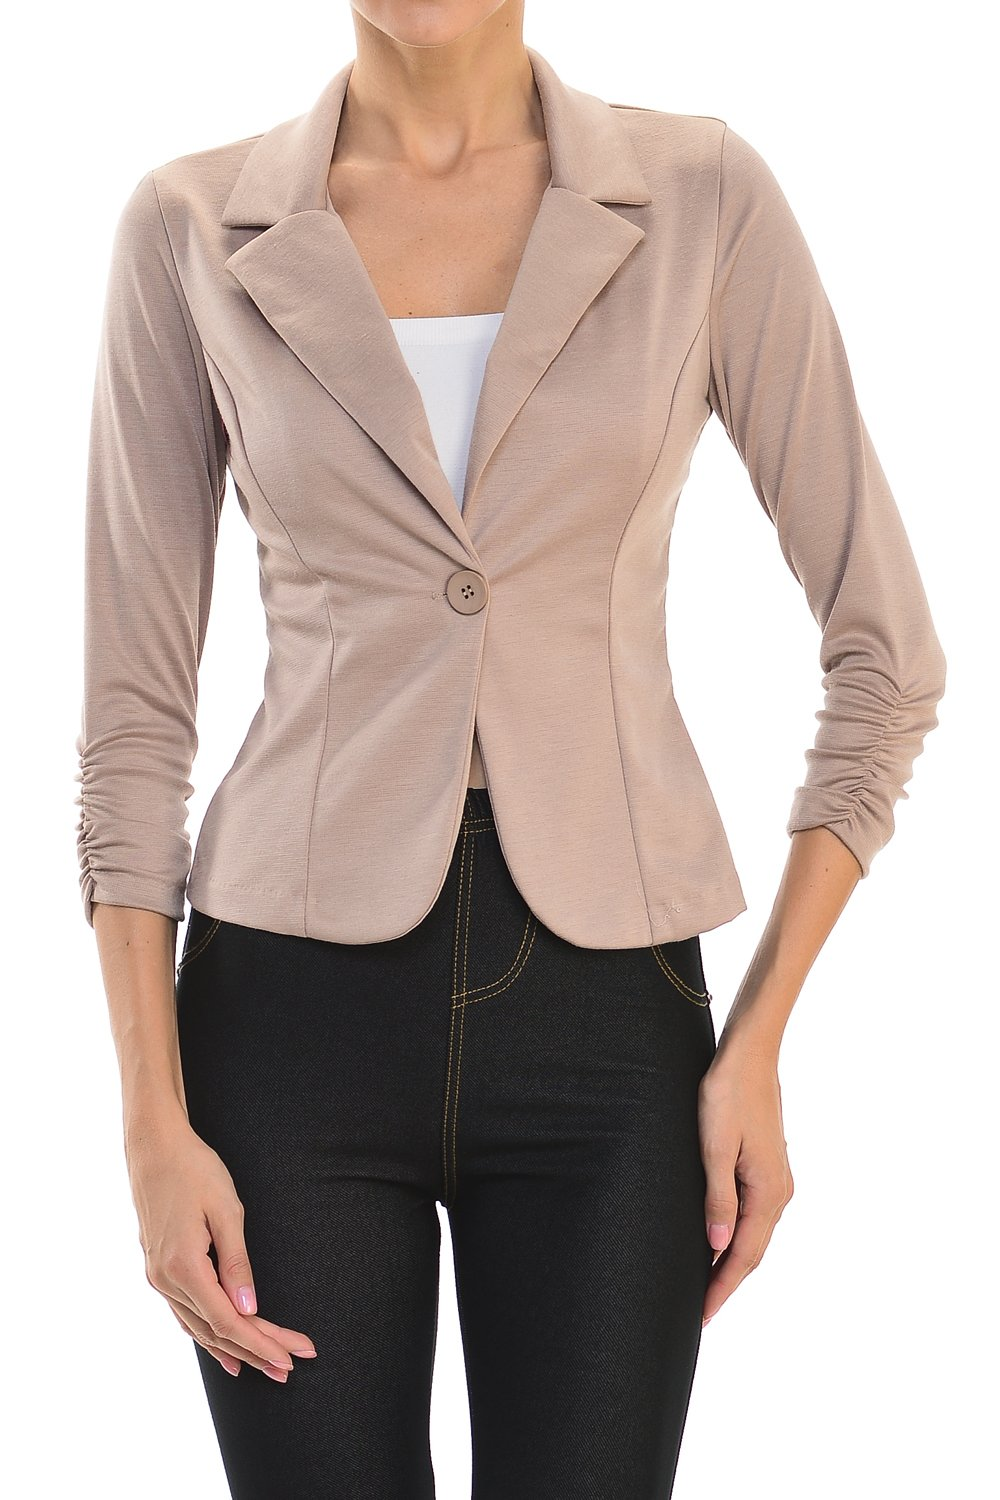 YourStyle Casual Work Solid Candy Color Blazer-MADE IN USA (2X-Large, Khaki)